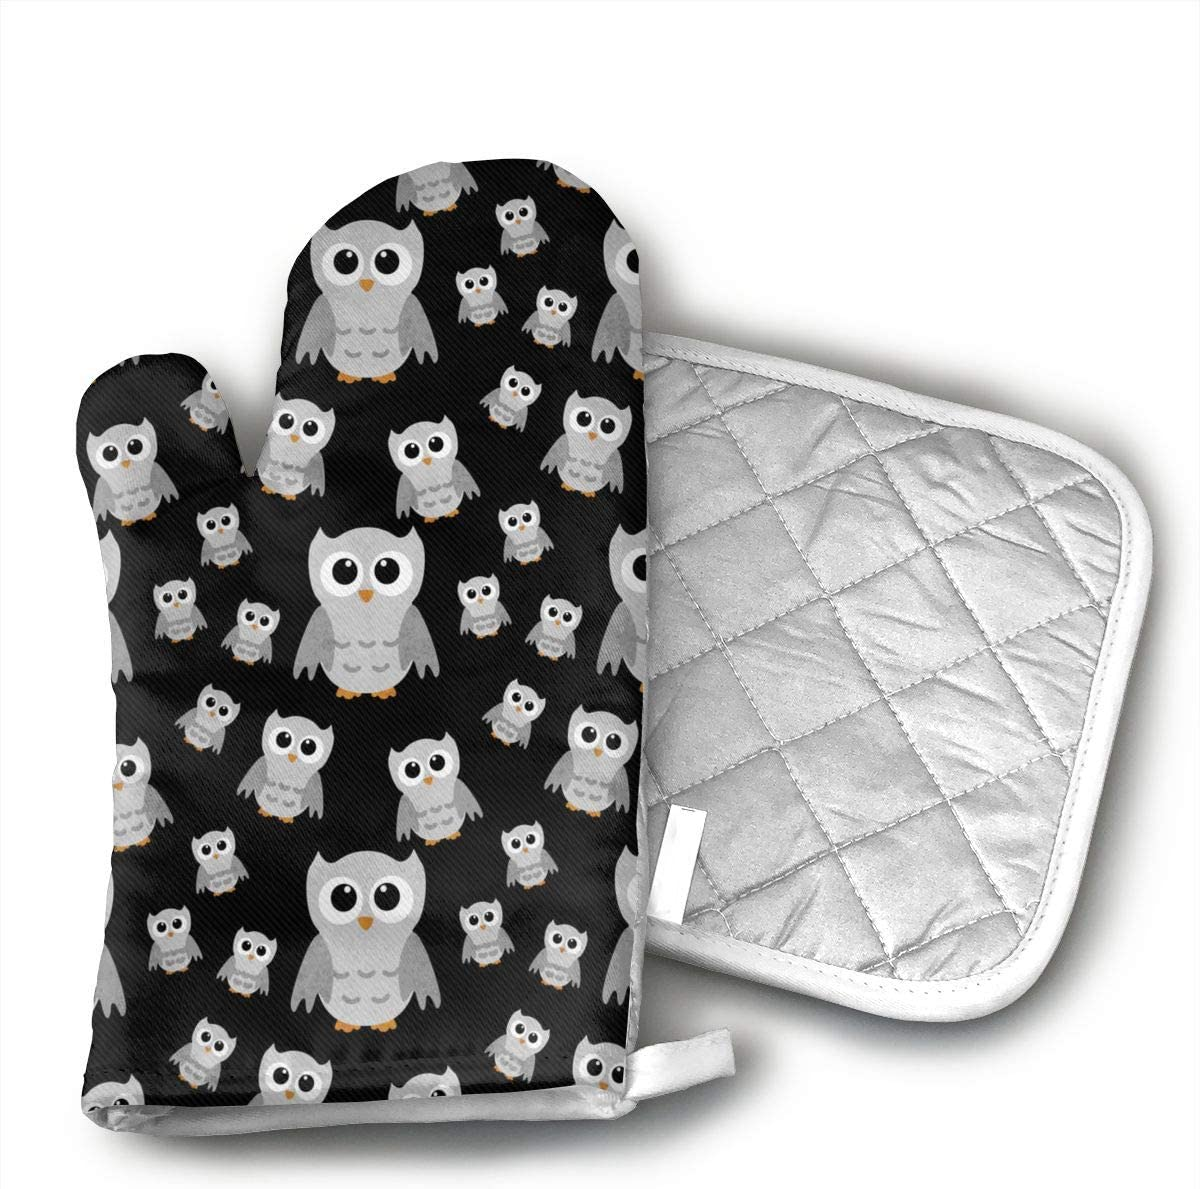 VFSFJKBG Grey Owl Oven Gloves, High Heat Resistance, Machine Washable High Heat Resistant Polyester Filling for Thanks Giving, Christmas